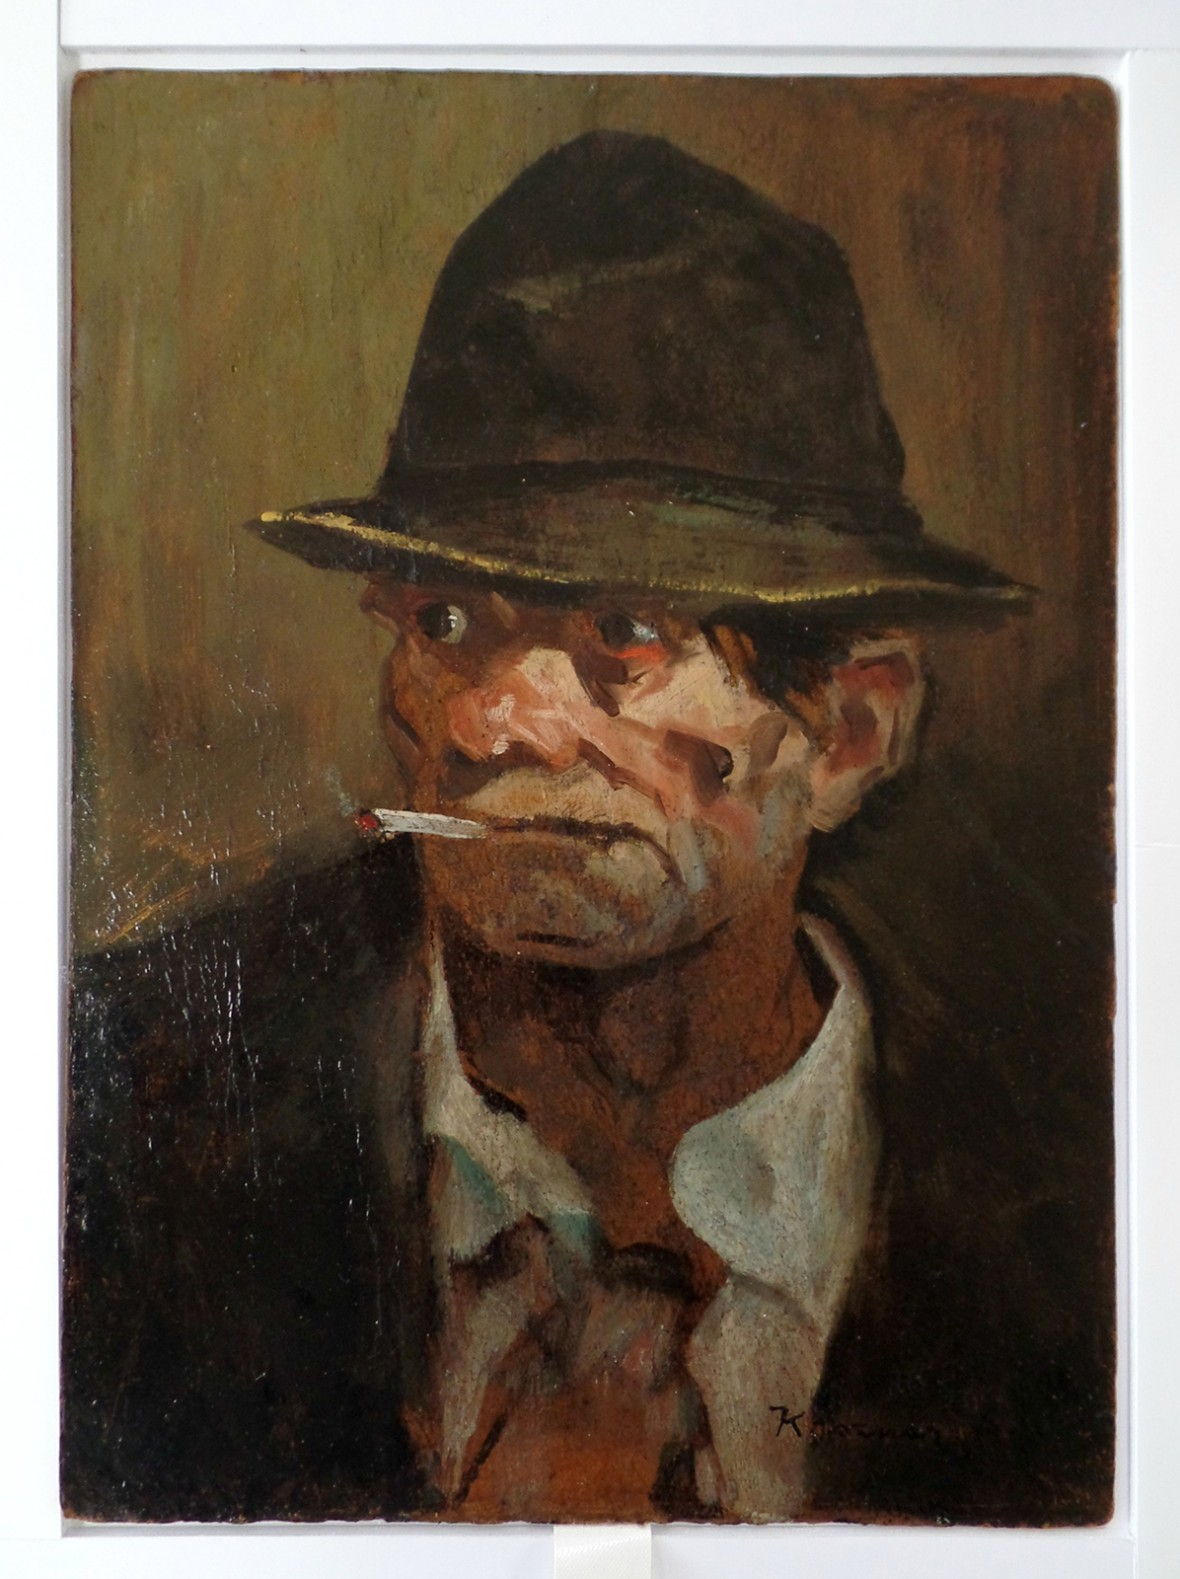 Smoking Man - After Art Restoration Services